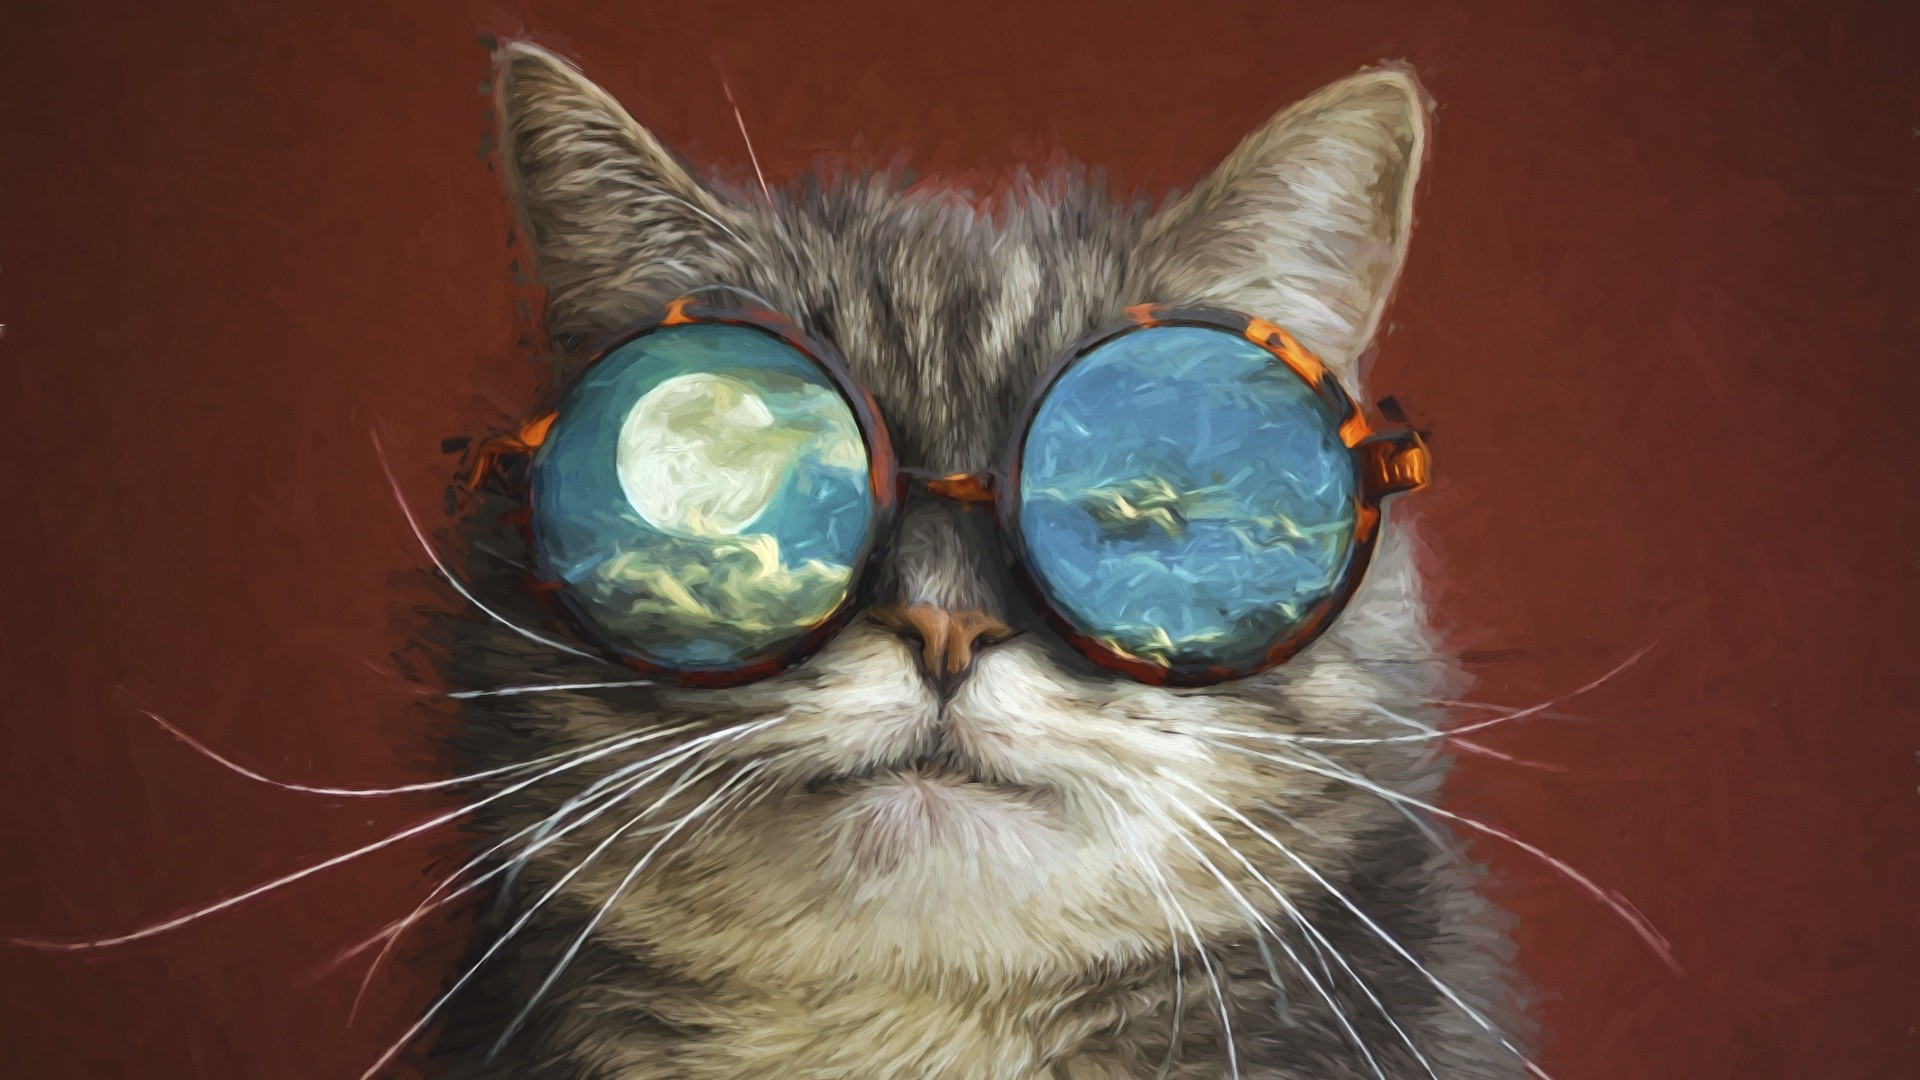 Cat With Glasses Wallpaper theme